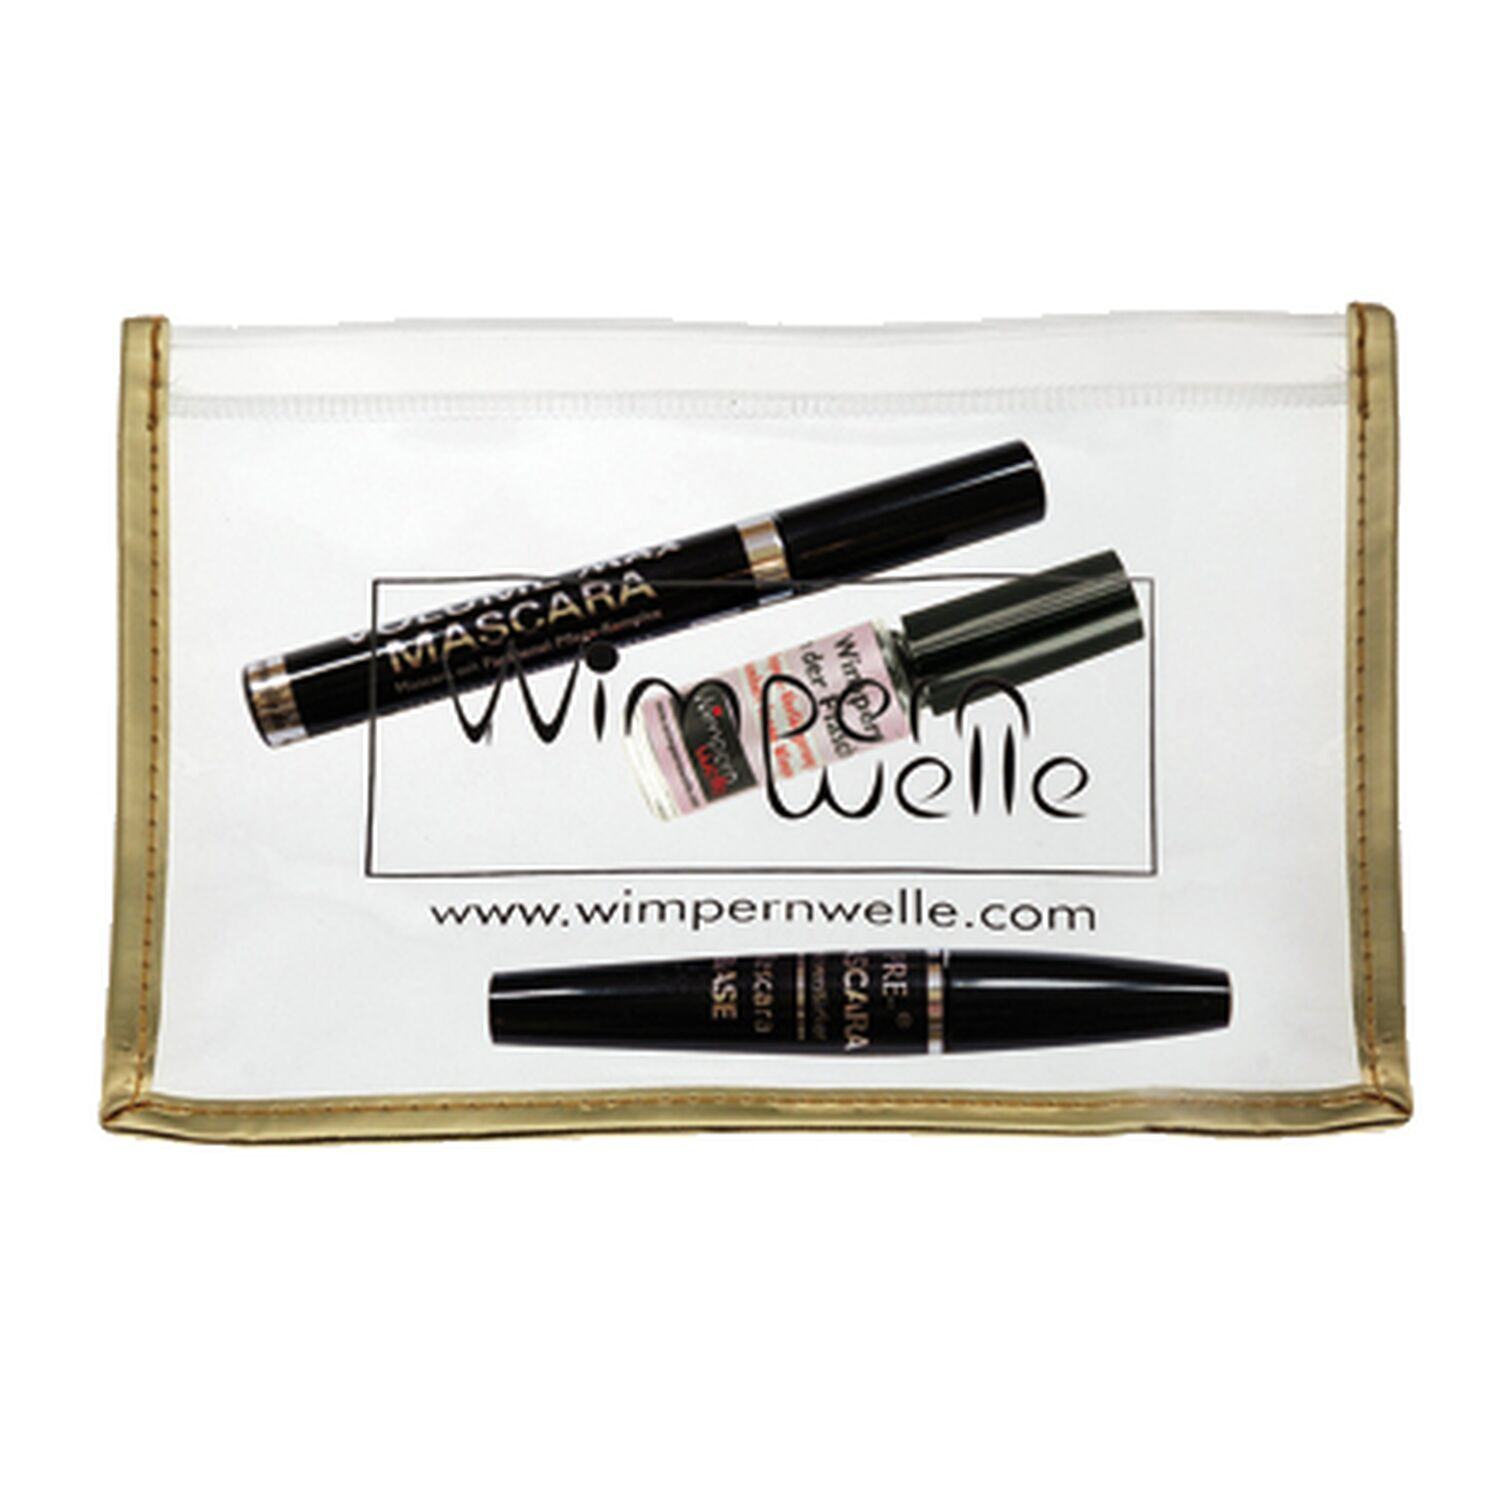 Wimpernwelle - Wimpern Set 3tlg, - 2 Mascara, Wimpern in der Flasche